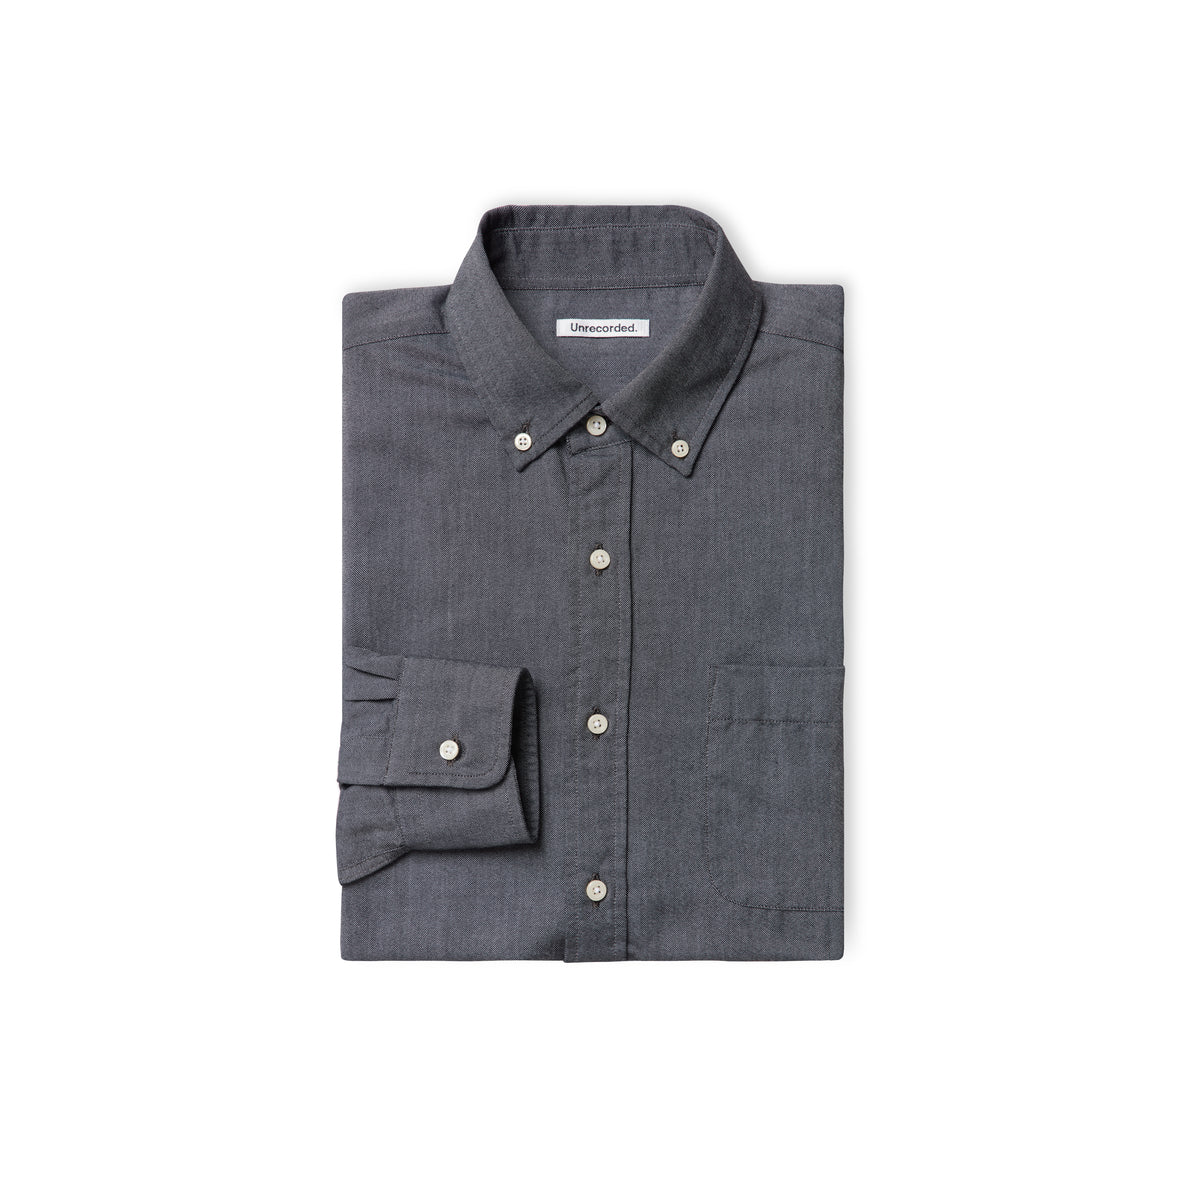 Oxford Shirt in Charcoal made from Organic Cotton